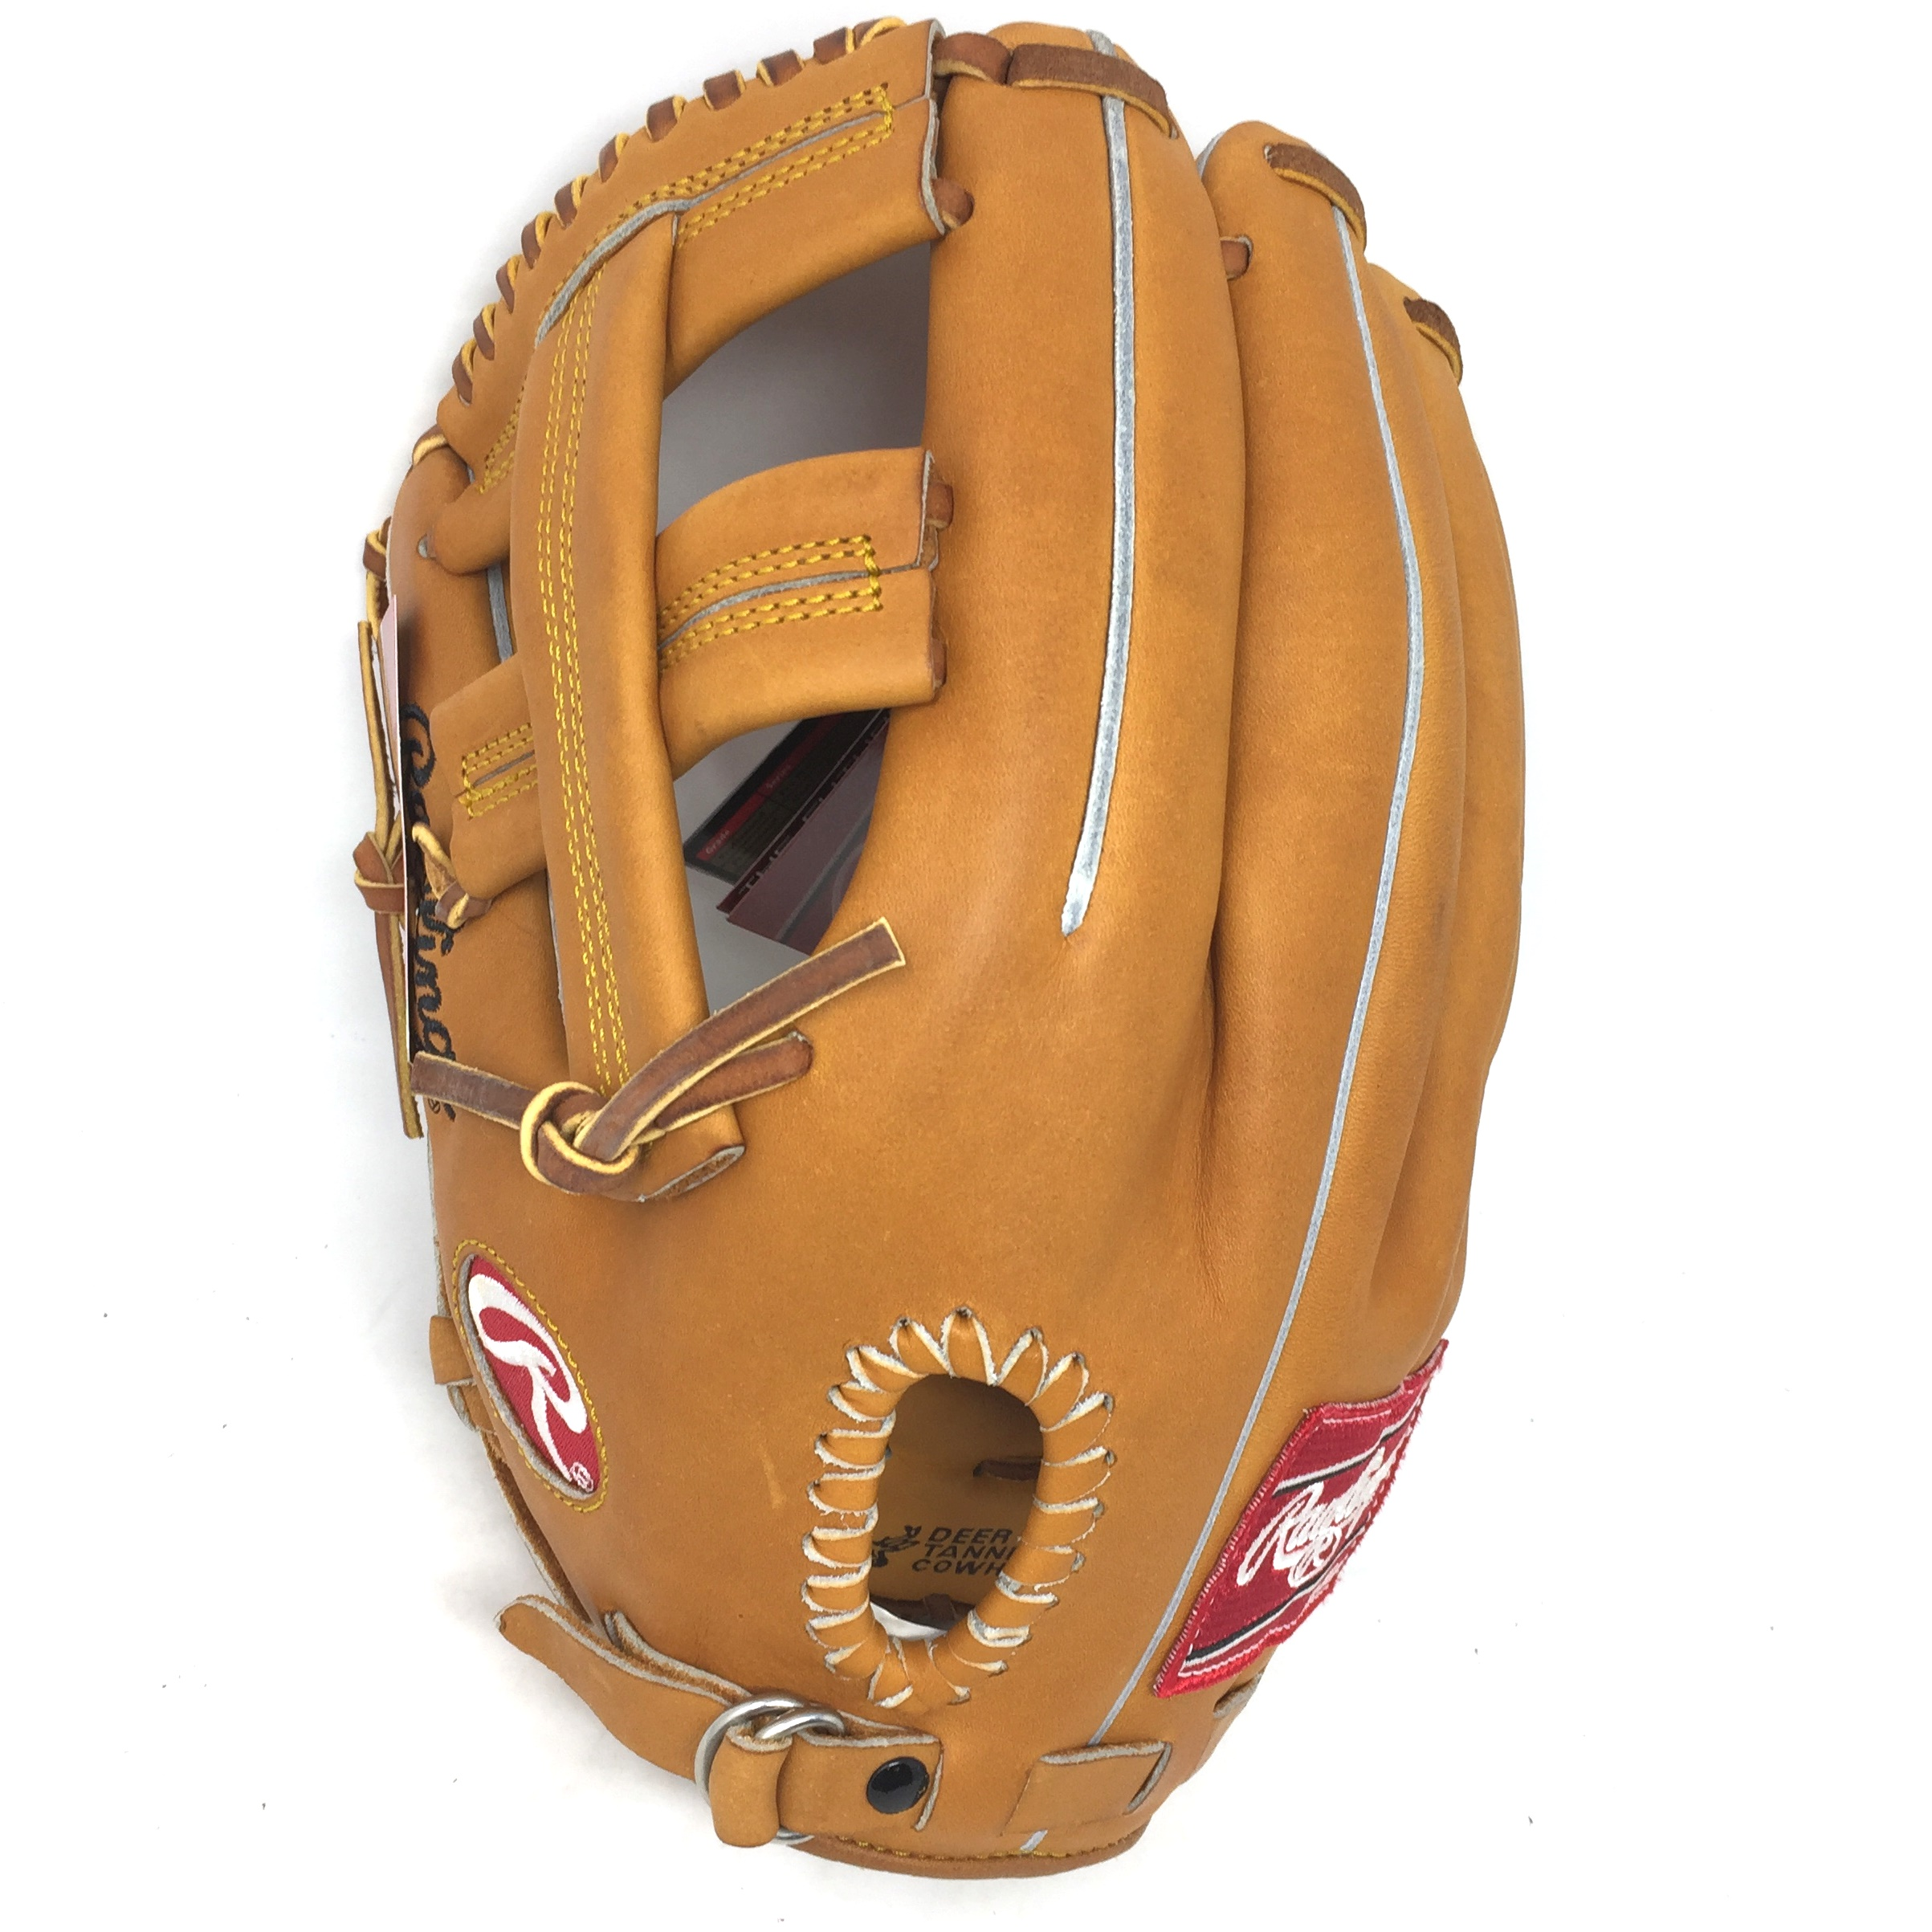 rawlings-pro6hf-12-in-heart-of-hide-baseball-glove-left-handed-throw PRO6HFRH Rawlings Does Not Apply Rawlings PRO6HF 12 Inch Heart of the Hide Baseball Glove Left